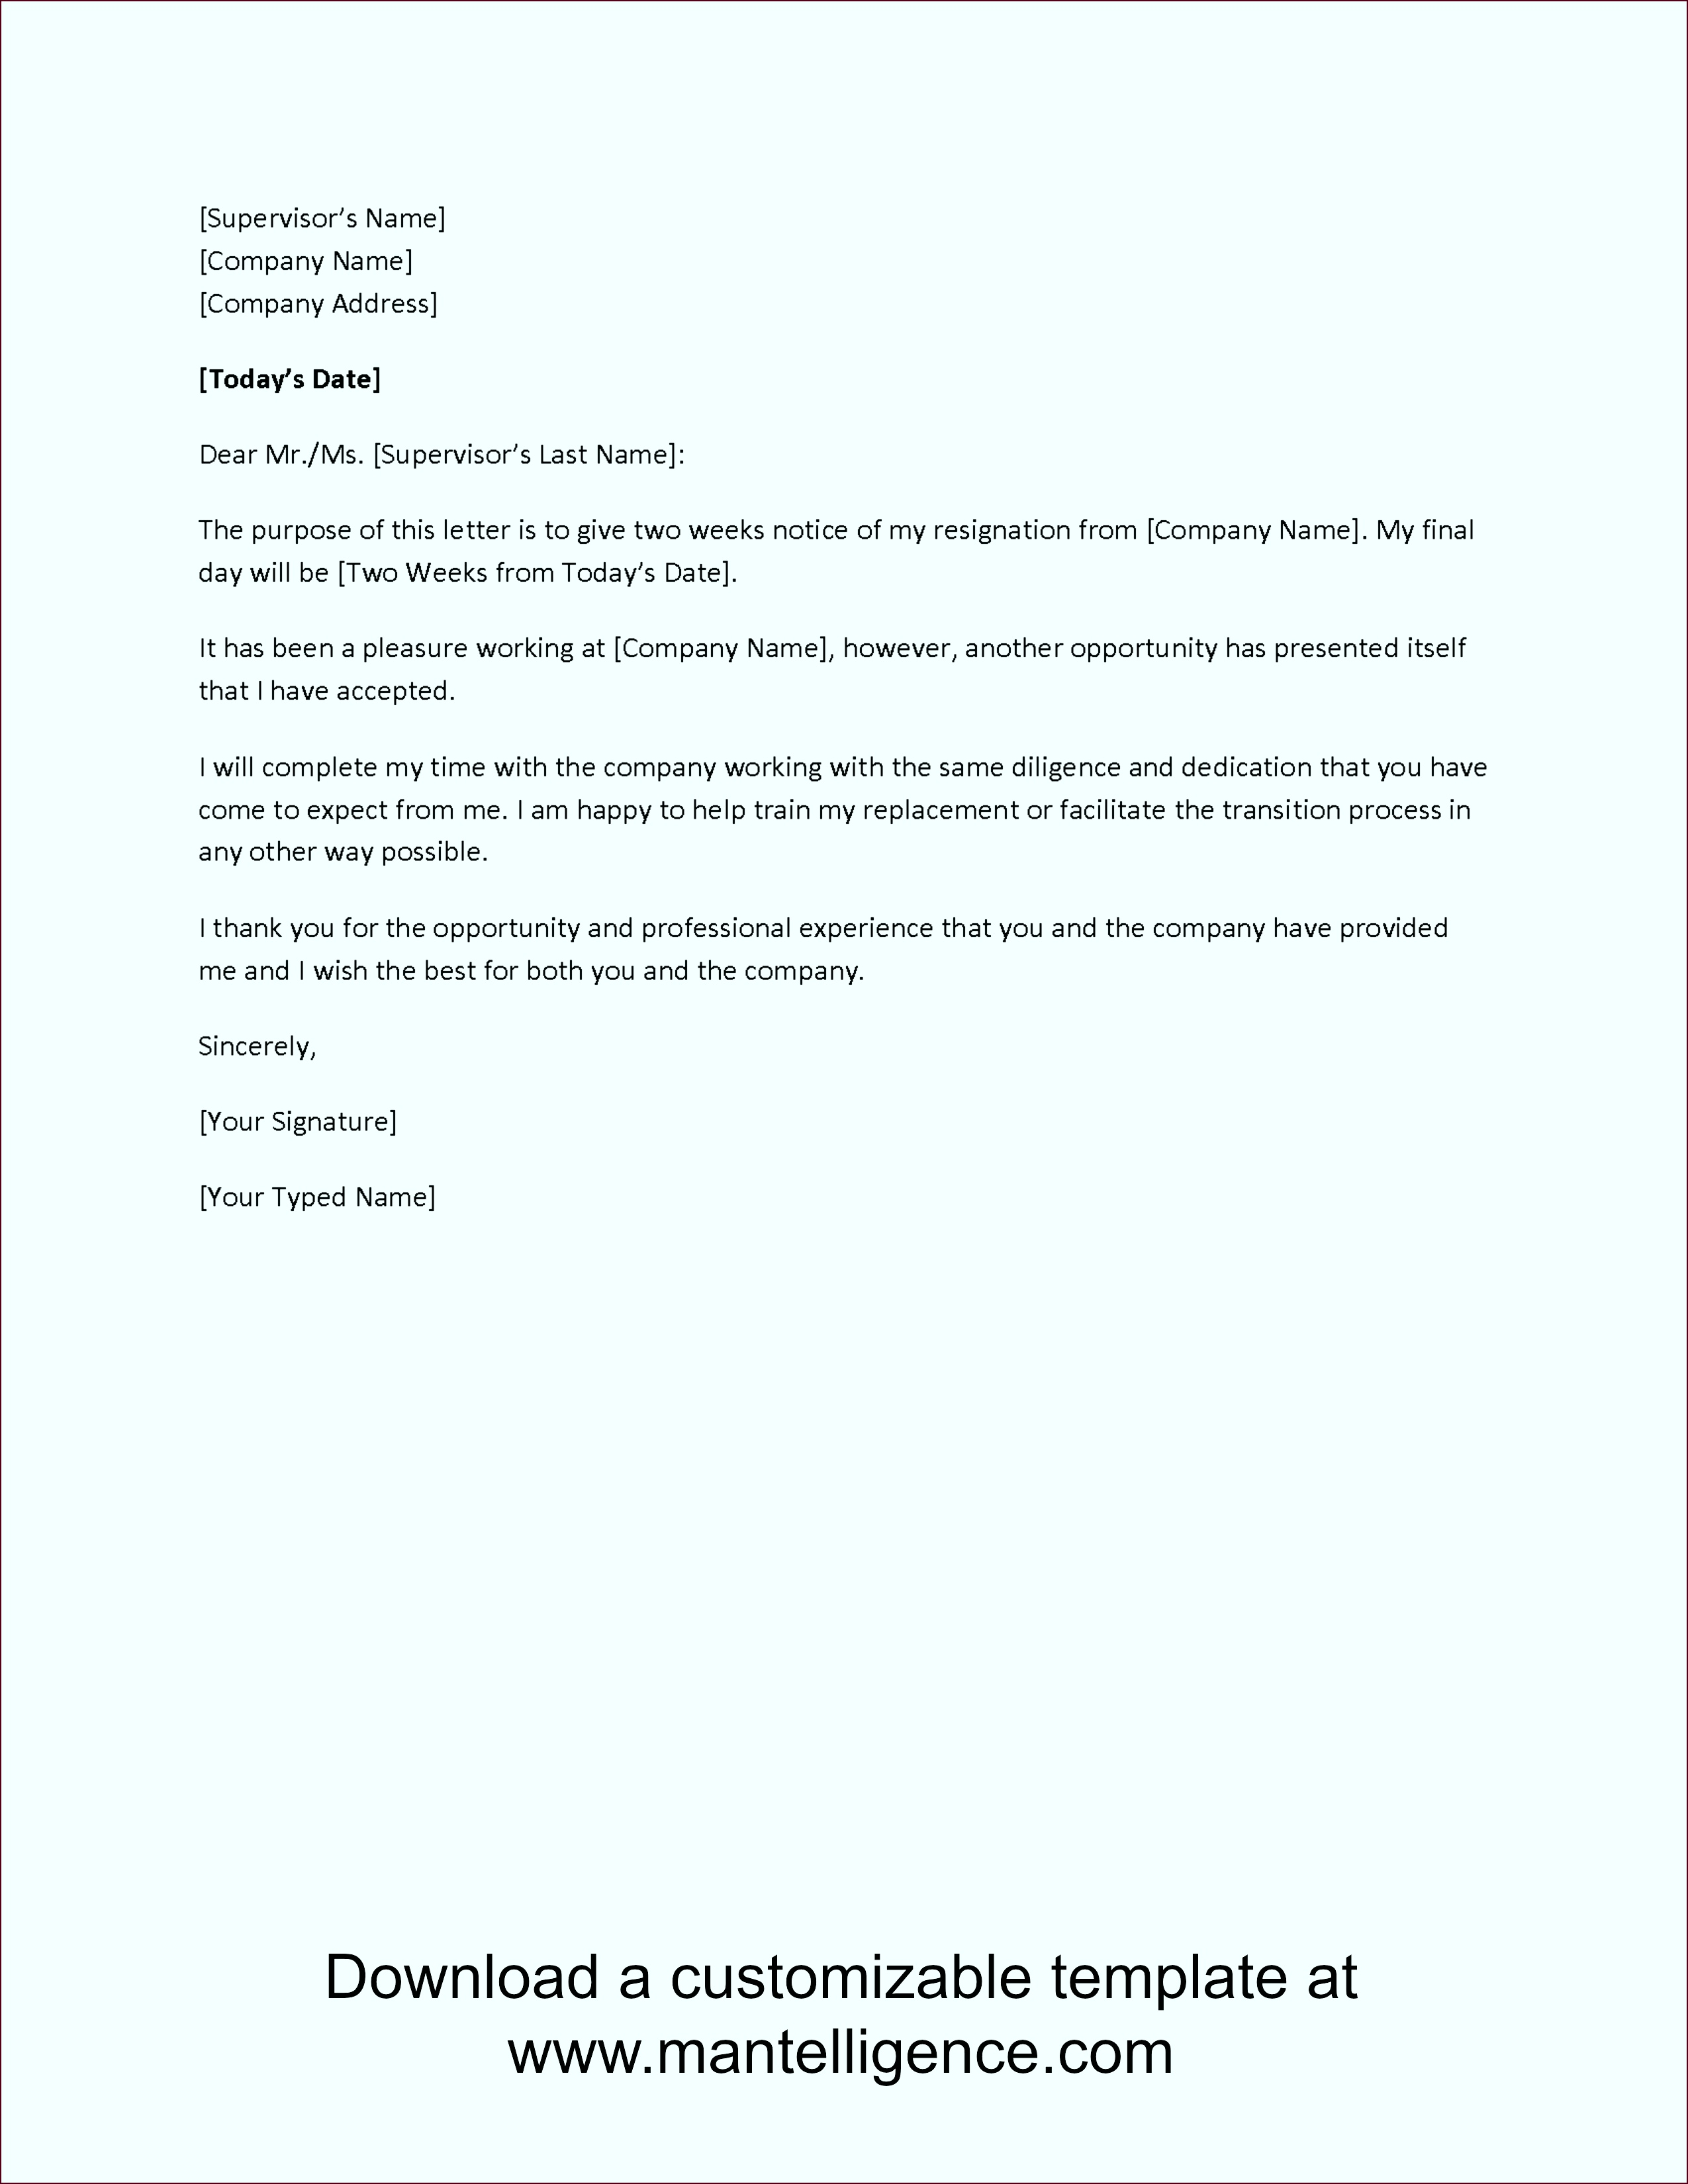 3 Highly Professional Two Weeks Notice Letter Templates aaaua